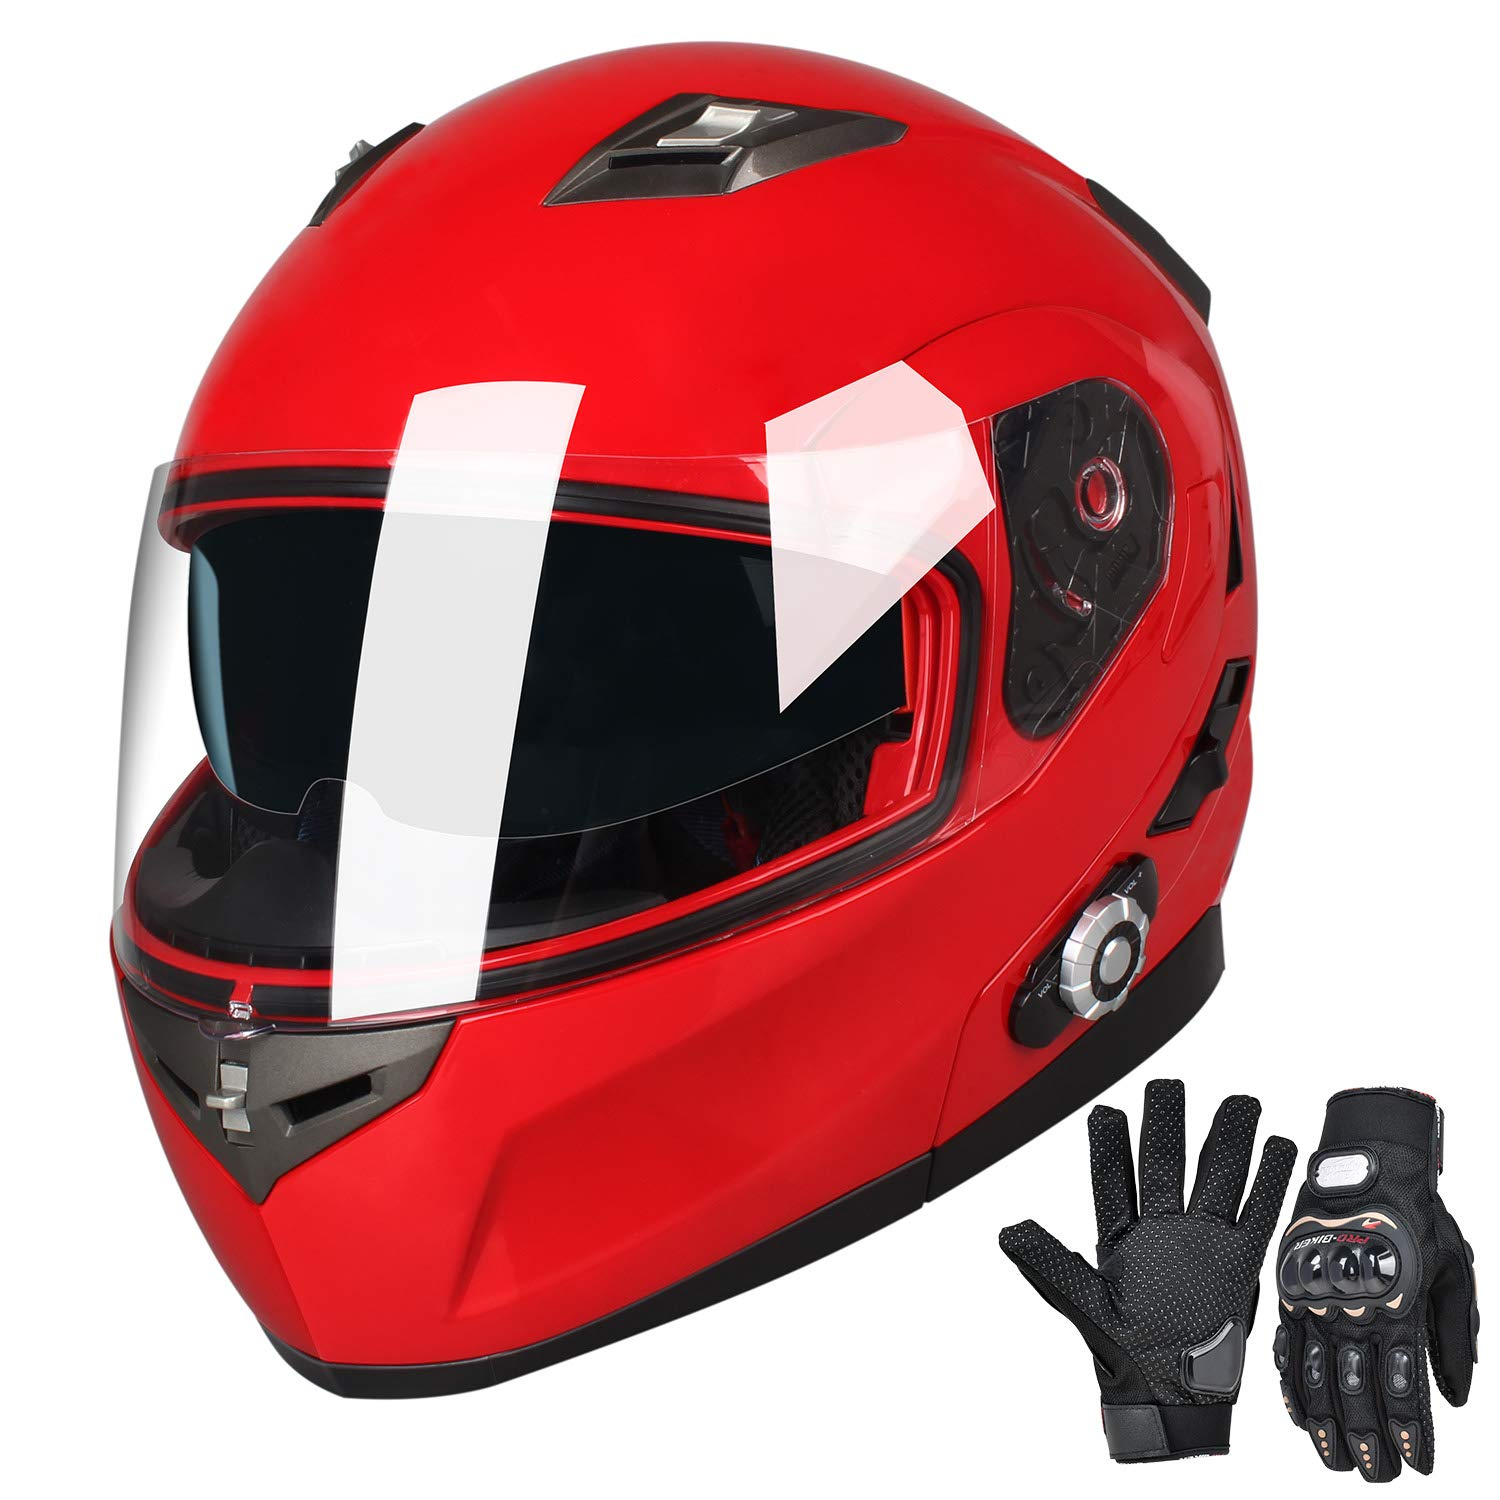 Motorcycle Bluetooth Helmets,FreedConn Flip up Dual Visors Full Face Helmet,Built-in Integrated Intercom Communication System(Range 500M,2-3Riders Pairing,FM radio,Waterproof,L,Red) by FreedConn (Image #2)